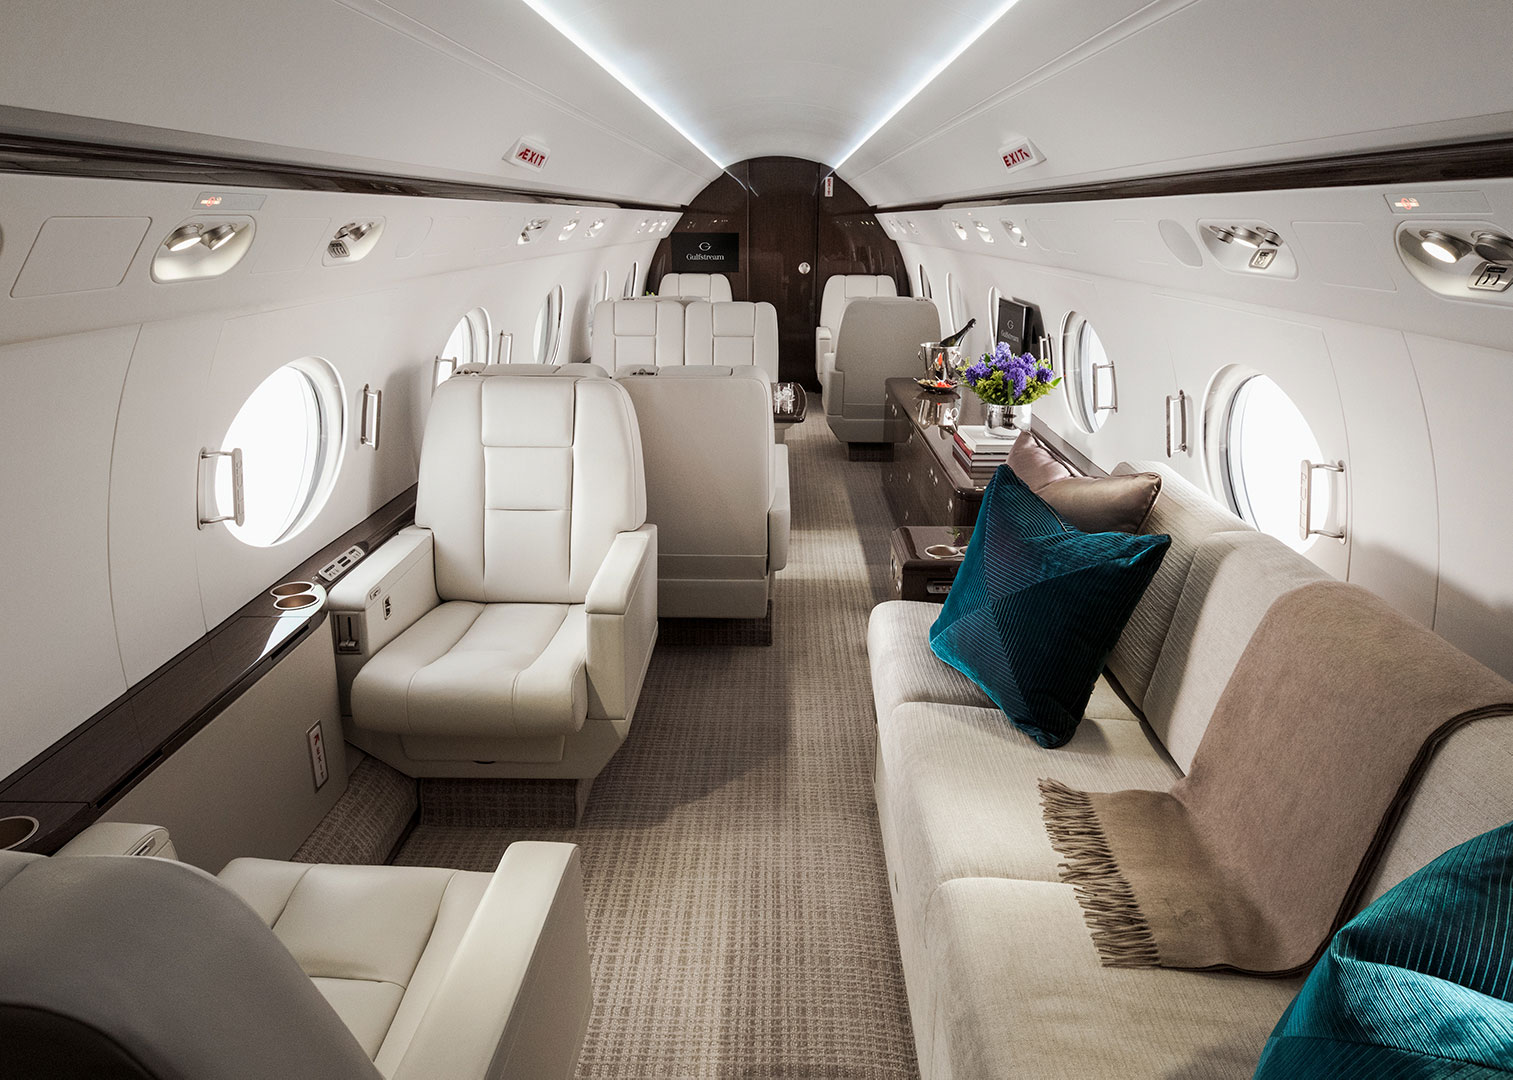 Interior of the Gulfstream V